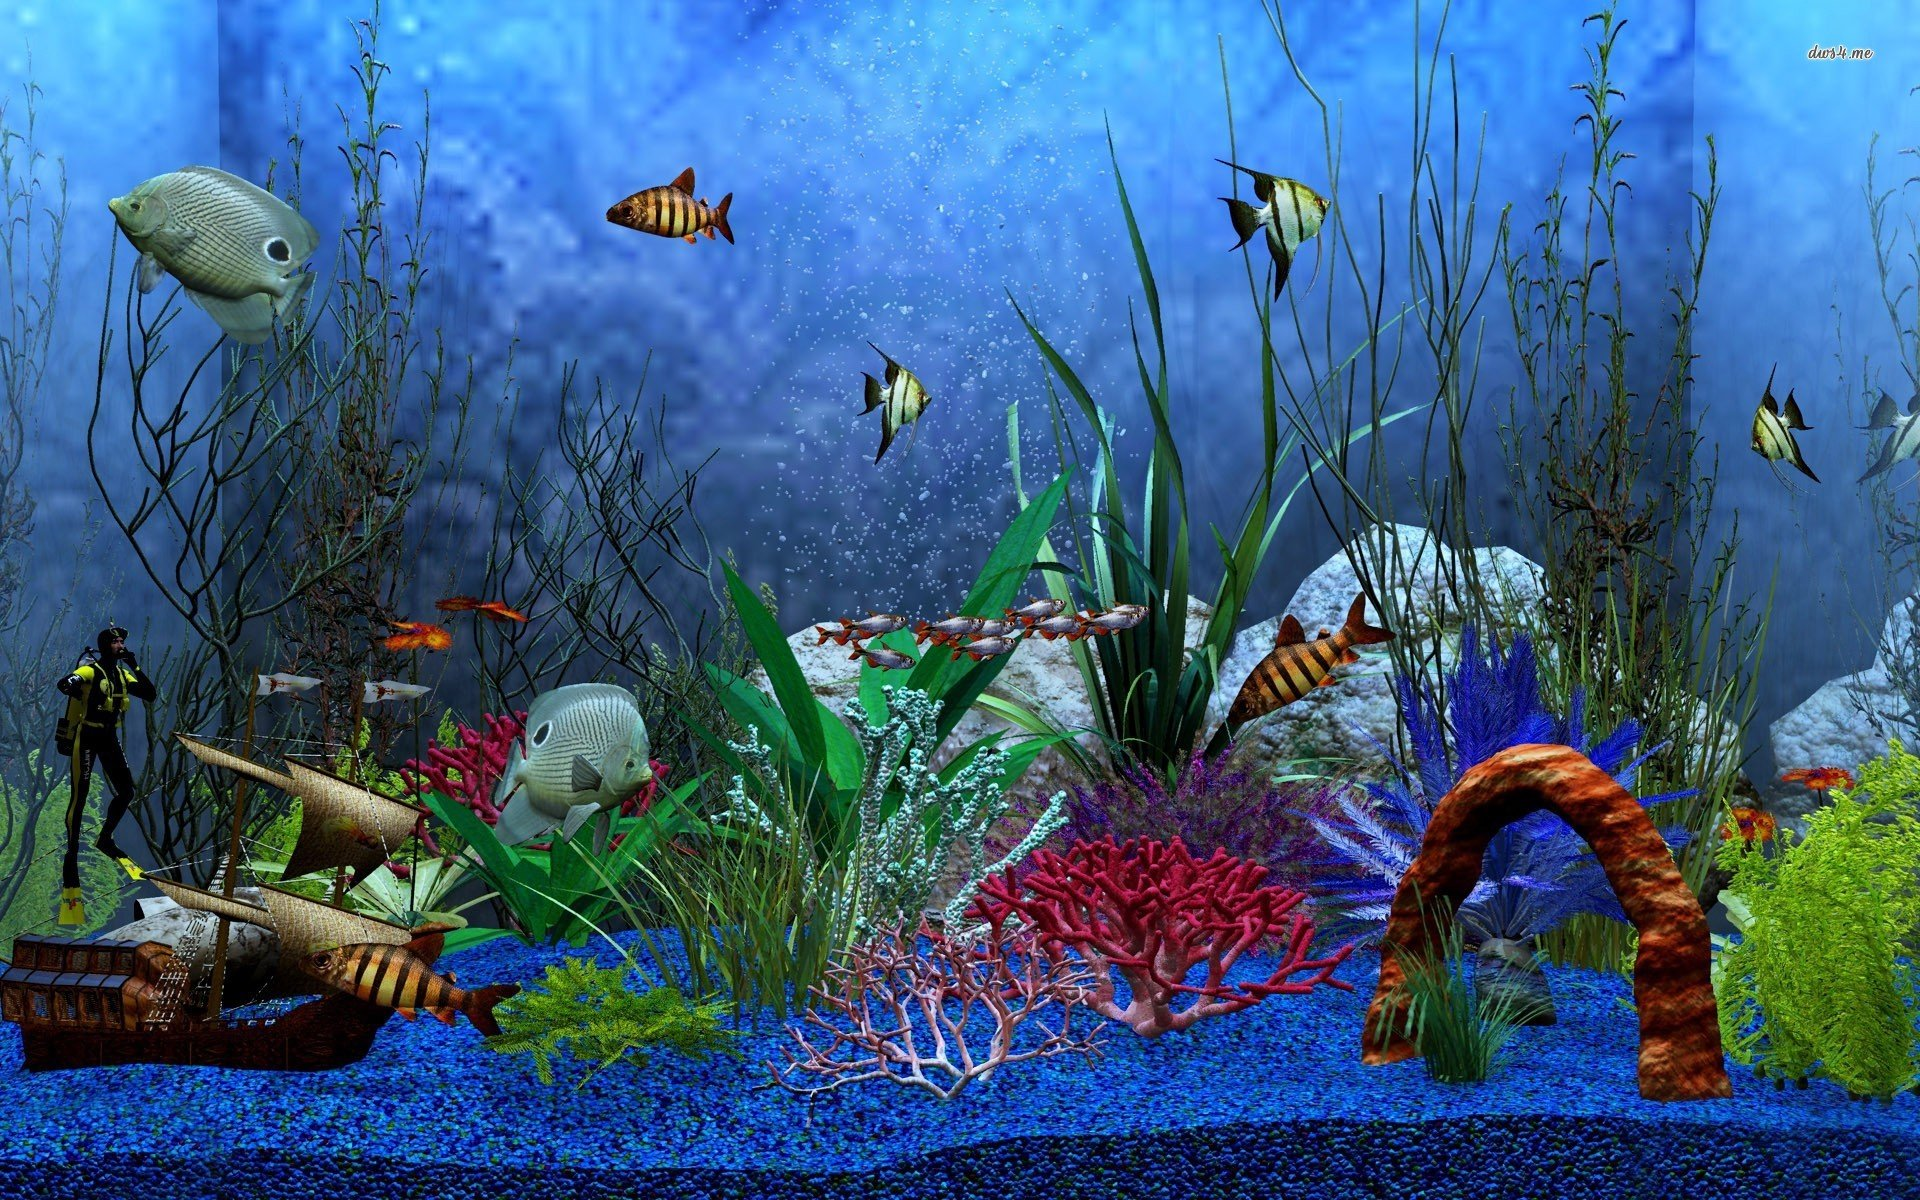 aquarium hd 1080p wallpaper wallpapersafari. Black Bedroom Furniture Sets. Home Design Ideas